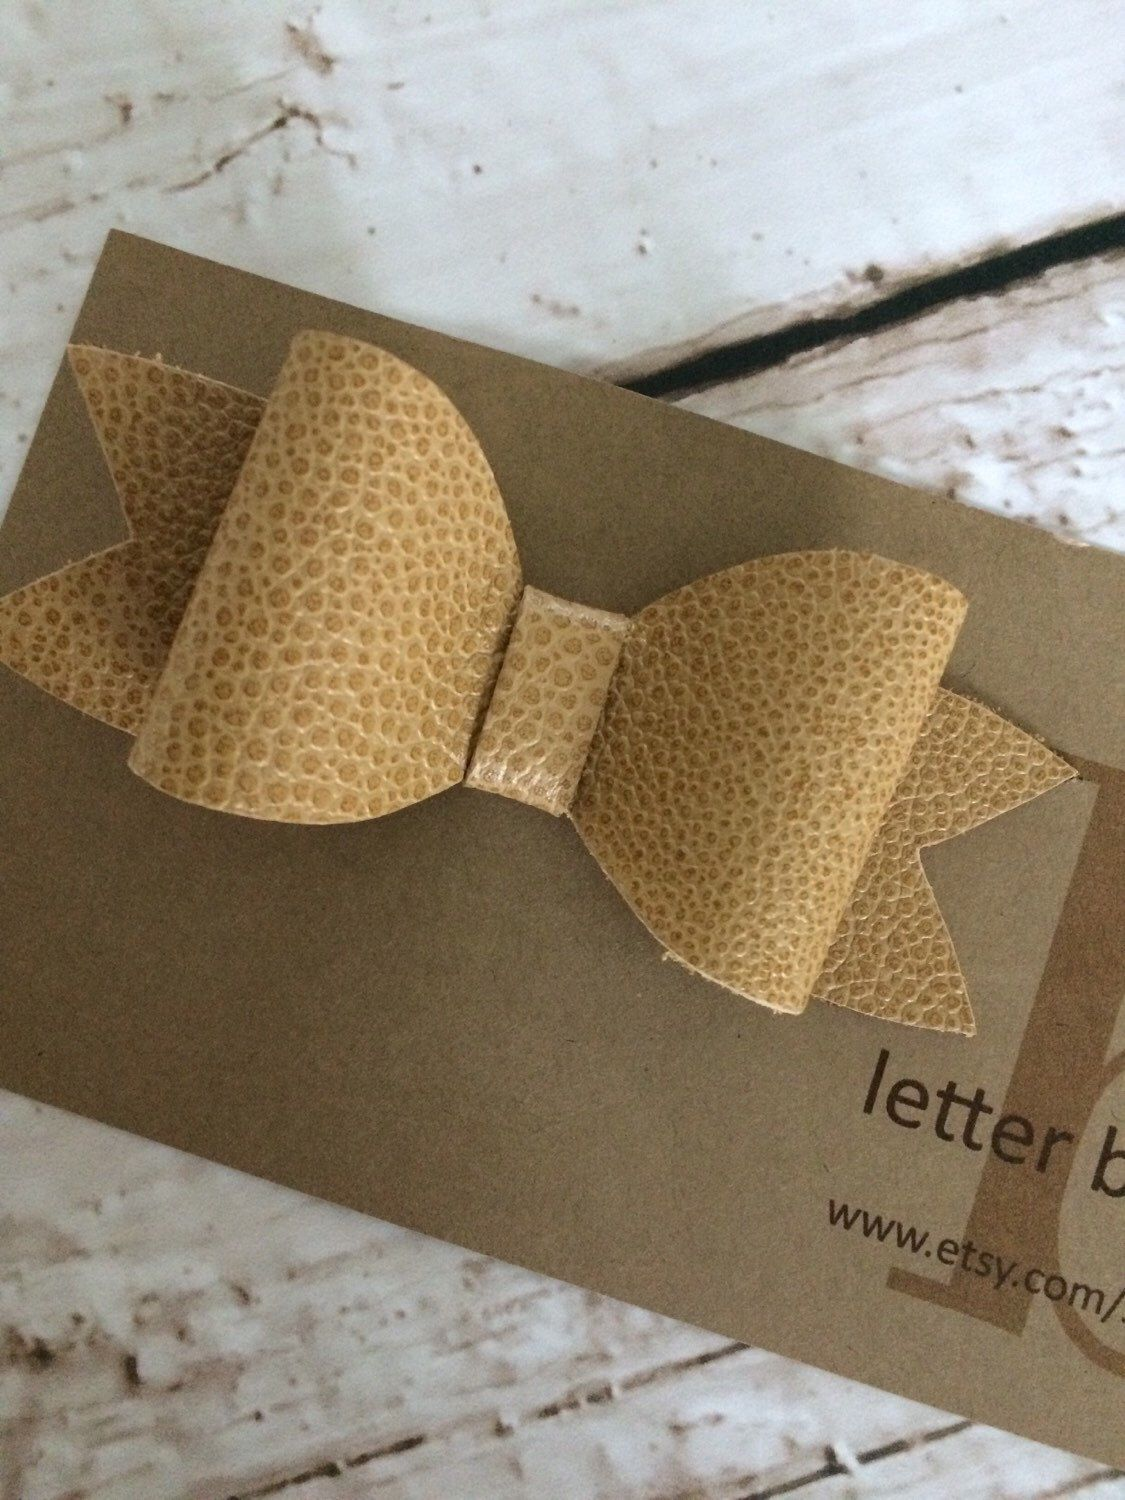 Camel Color Textured Leather Hair Bow on Alligator Clip  by letterbdesigns on Etsy https://www.etsy.com/listing/230446170/camel-color-textured-leather-hair-bow-on